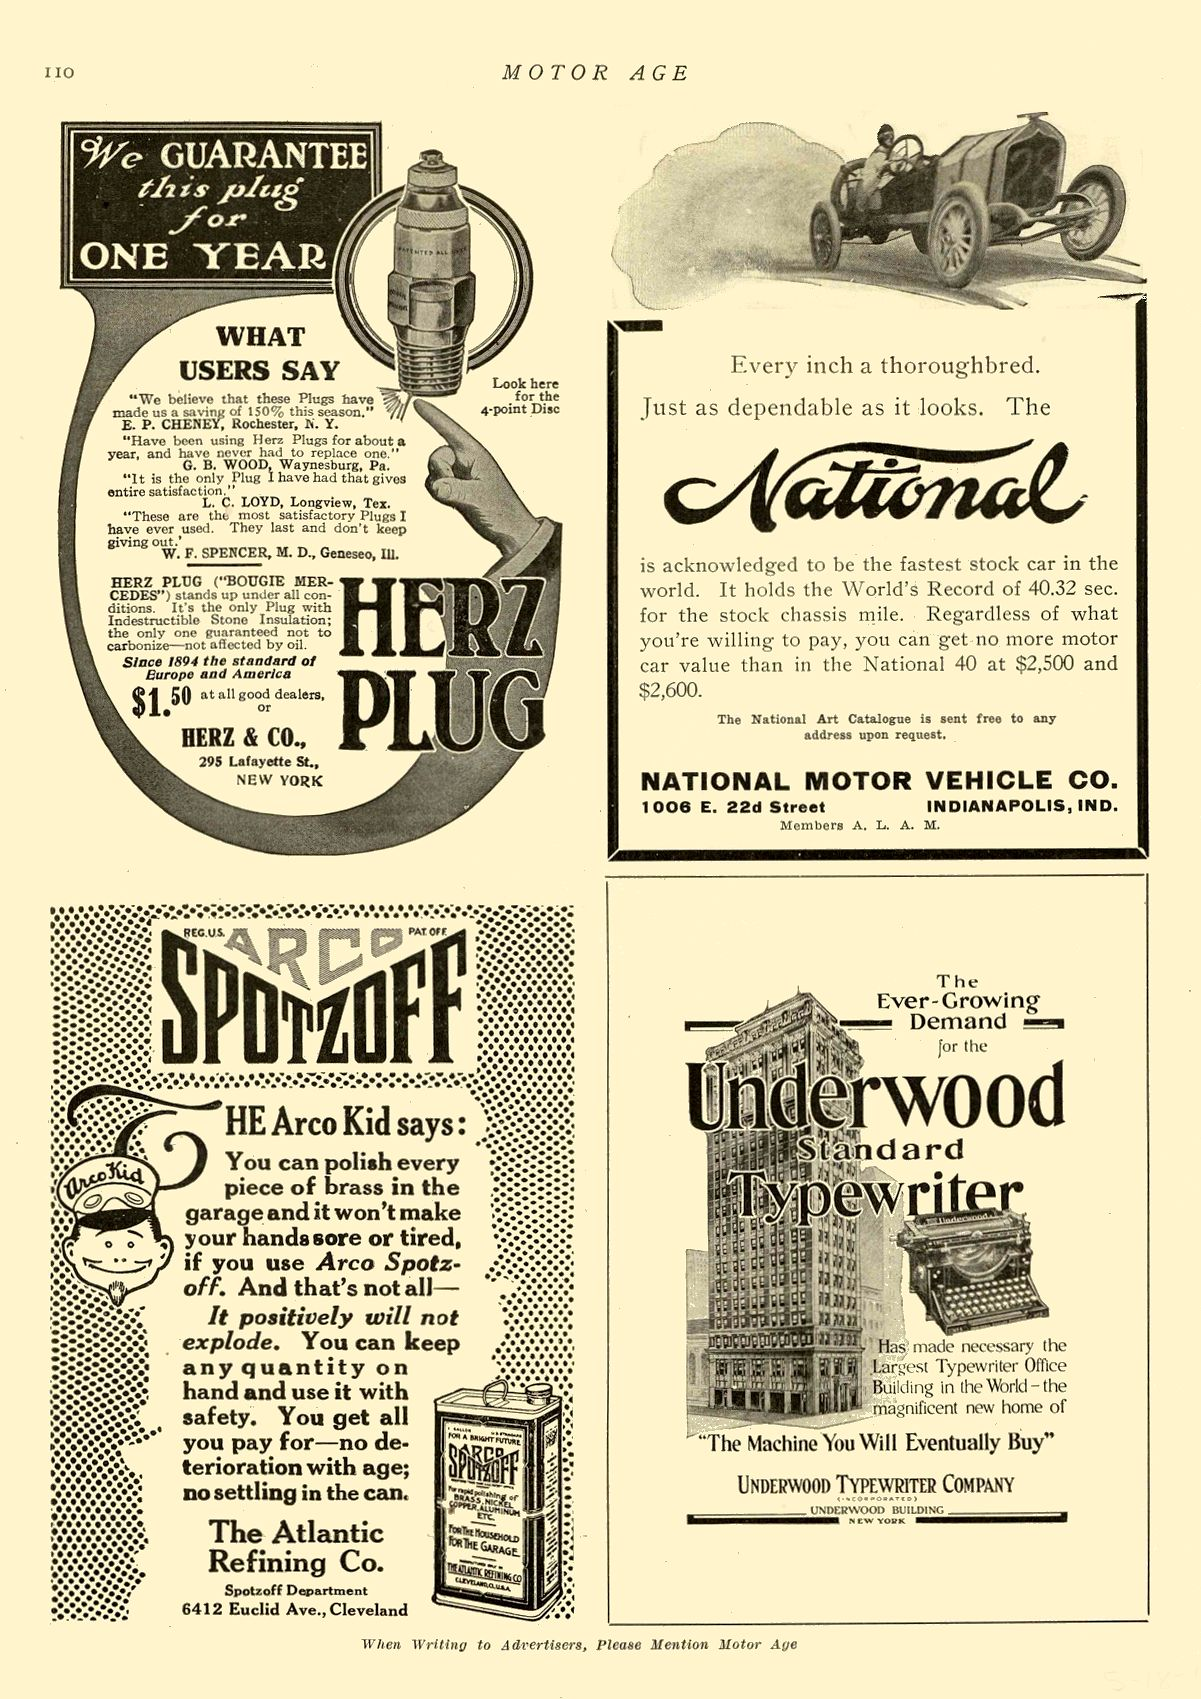 1911 5 18 NATIONAL National Every inch a thoroughbred. NATIONAL MOTOR VEHICLE CO. Indianapolis, IND MOTOR AGE May 18, 1911 8.5″x12″ page 110